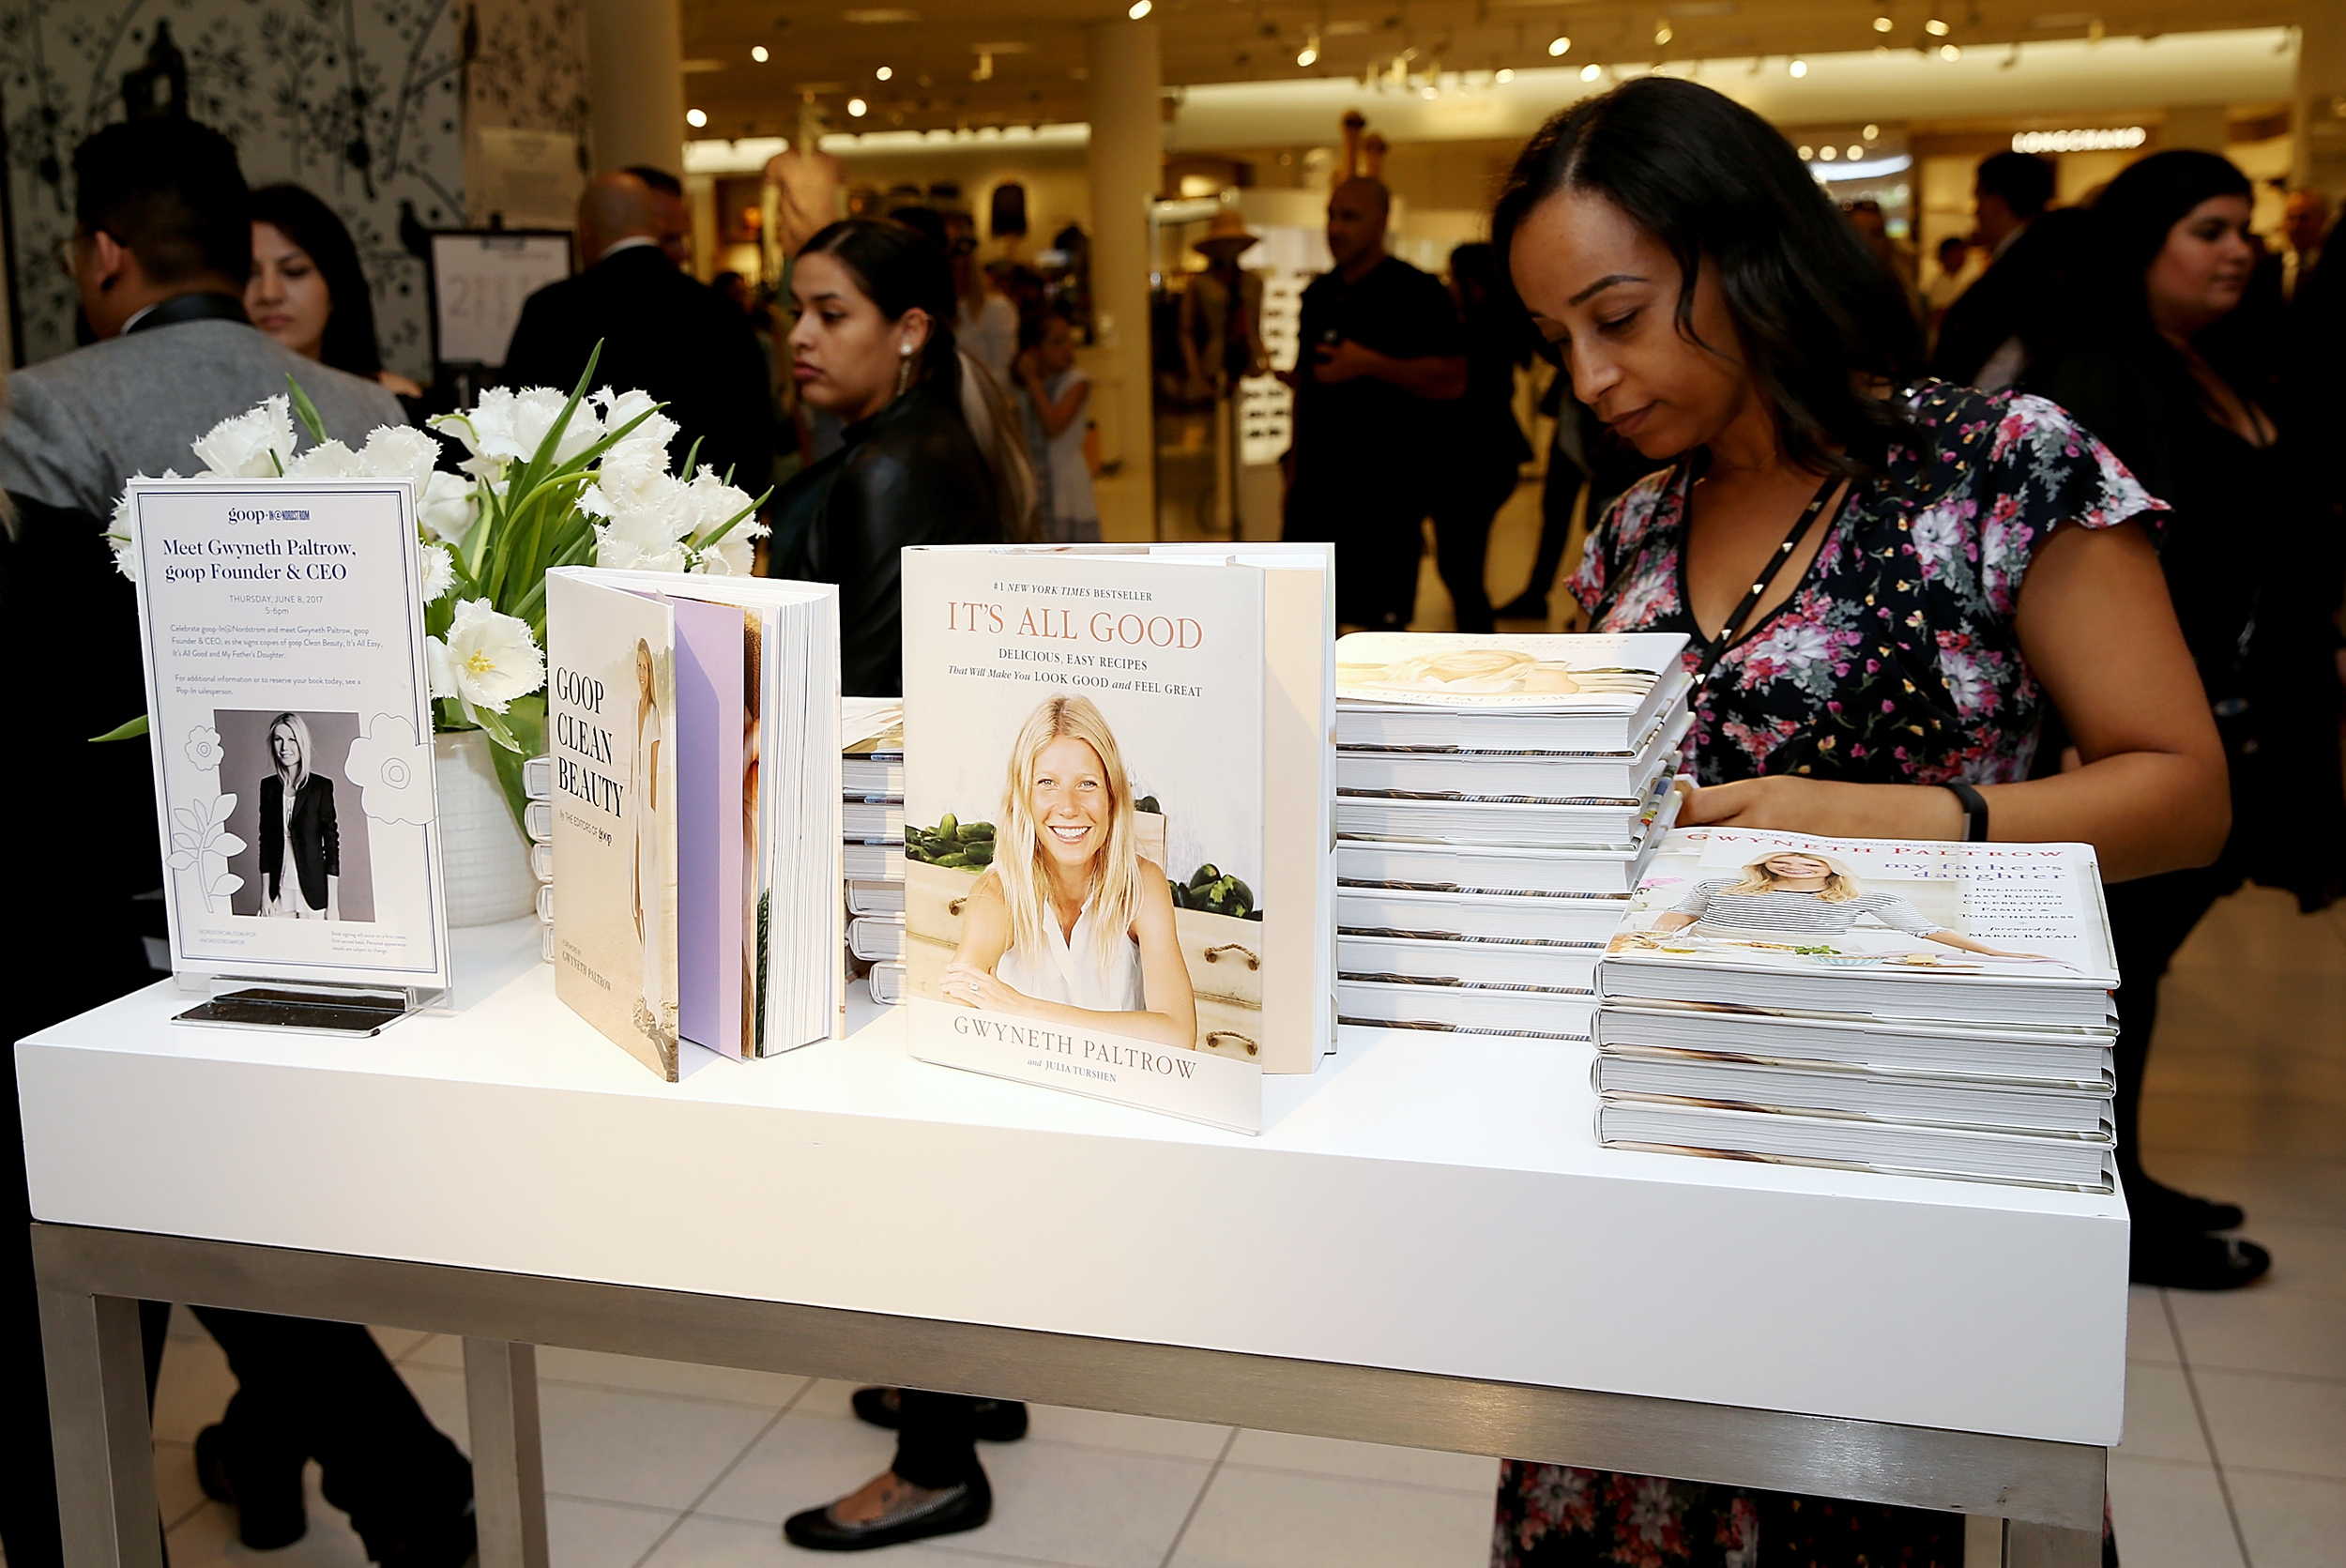 Image: Copies of Gwyneth Paltrow's books at an event in Los Angeles